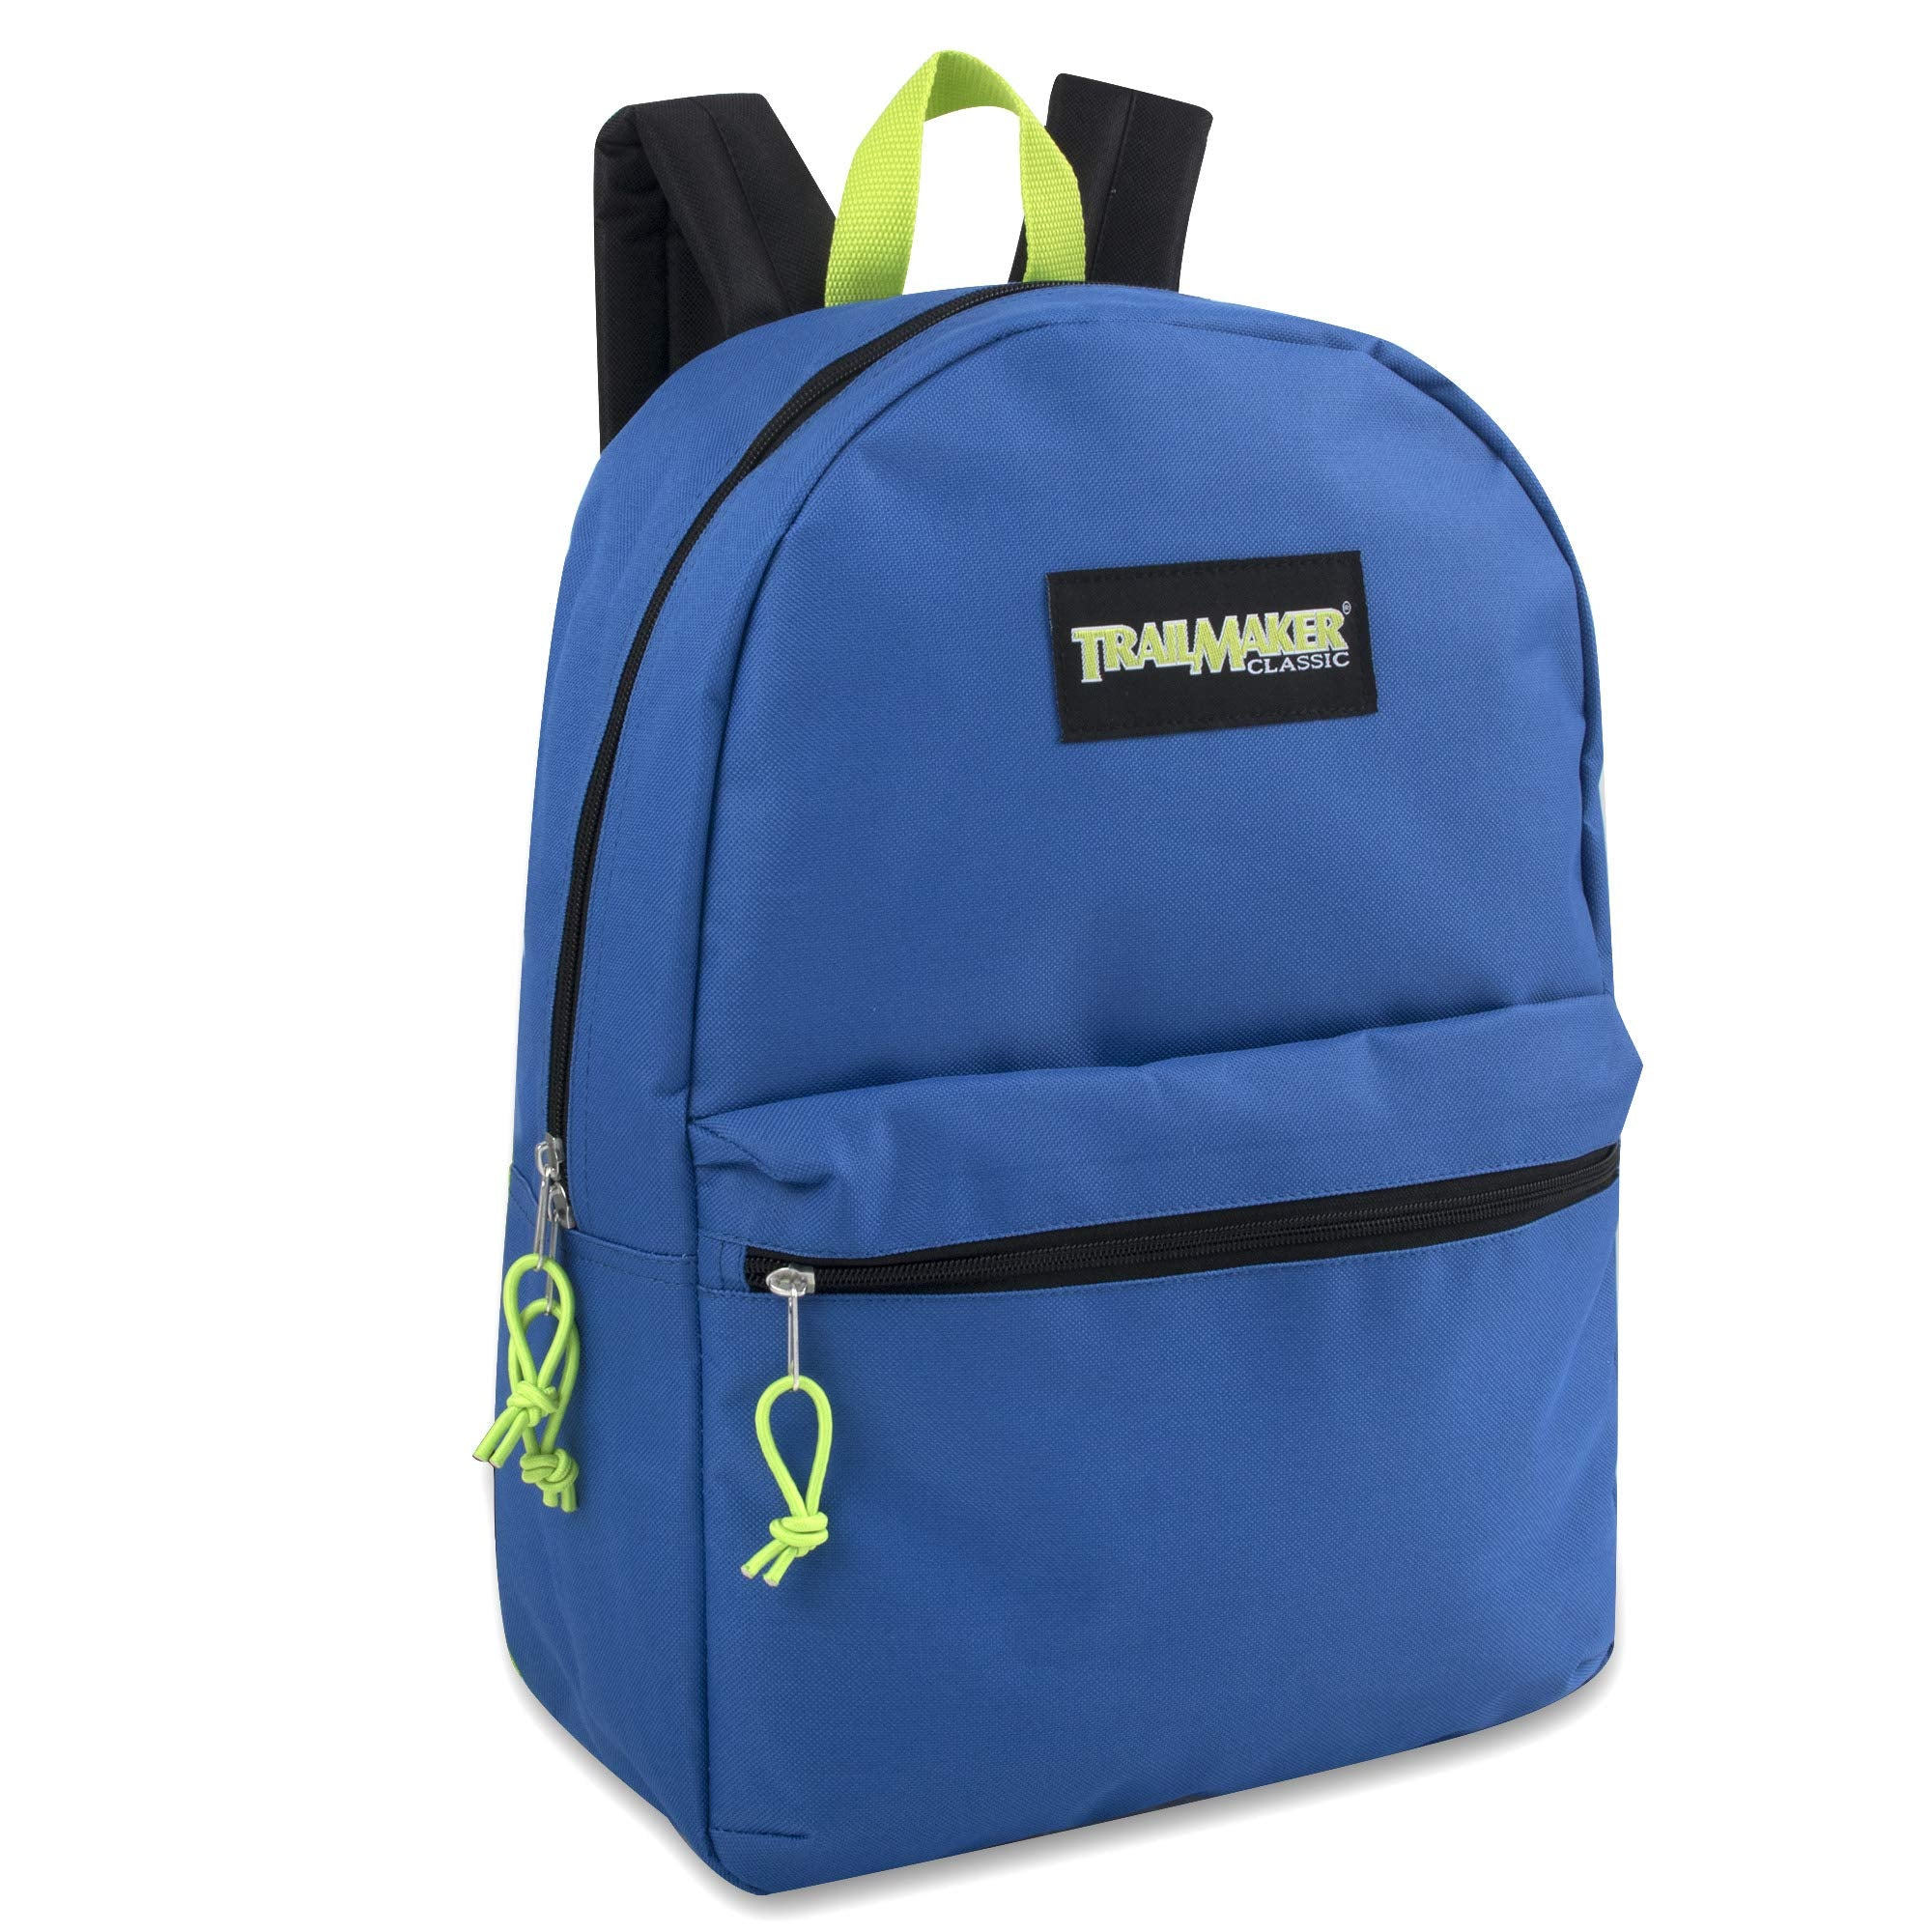 Solid 17 Inch Backpacks With Adjustable Padded Shoulder Straps